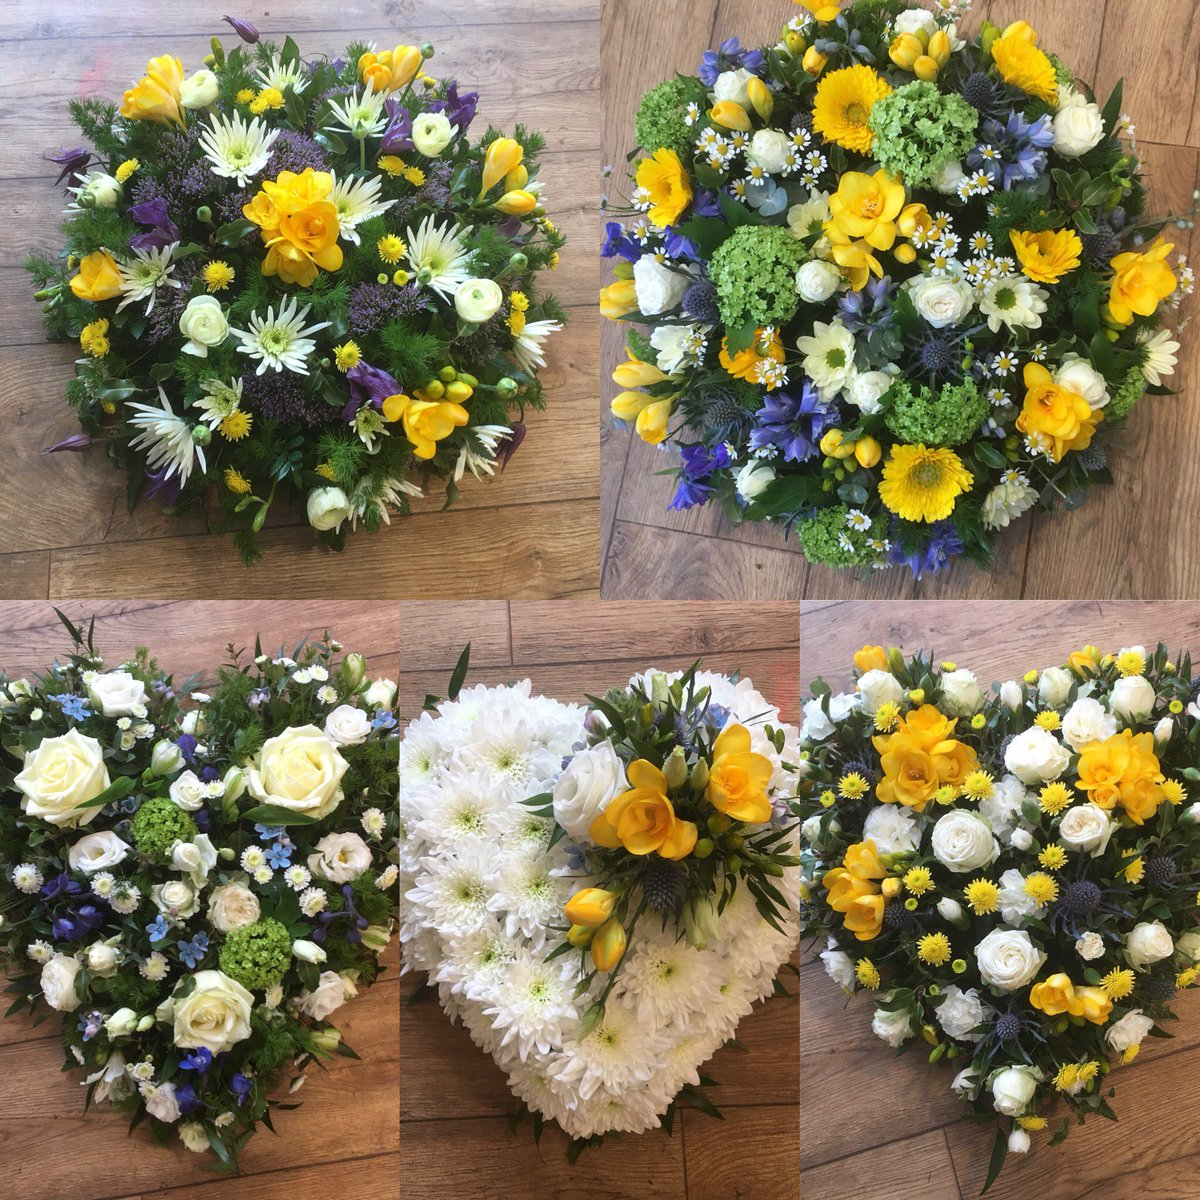 Louise james florist on twitter good evening gloshour we have been busy creating wedding and funeral flowers it amazes me how flowers can convey every message and sentimentpicittere1ftmbvycj izmirmasajfo